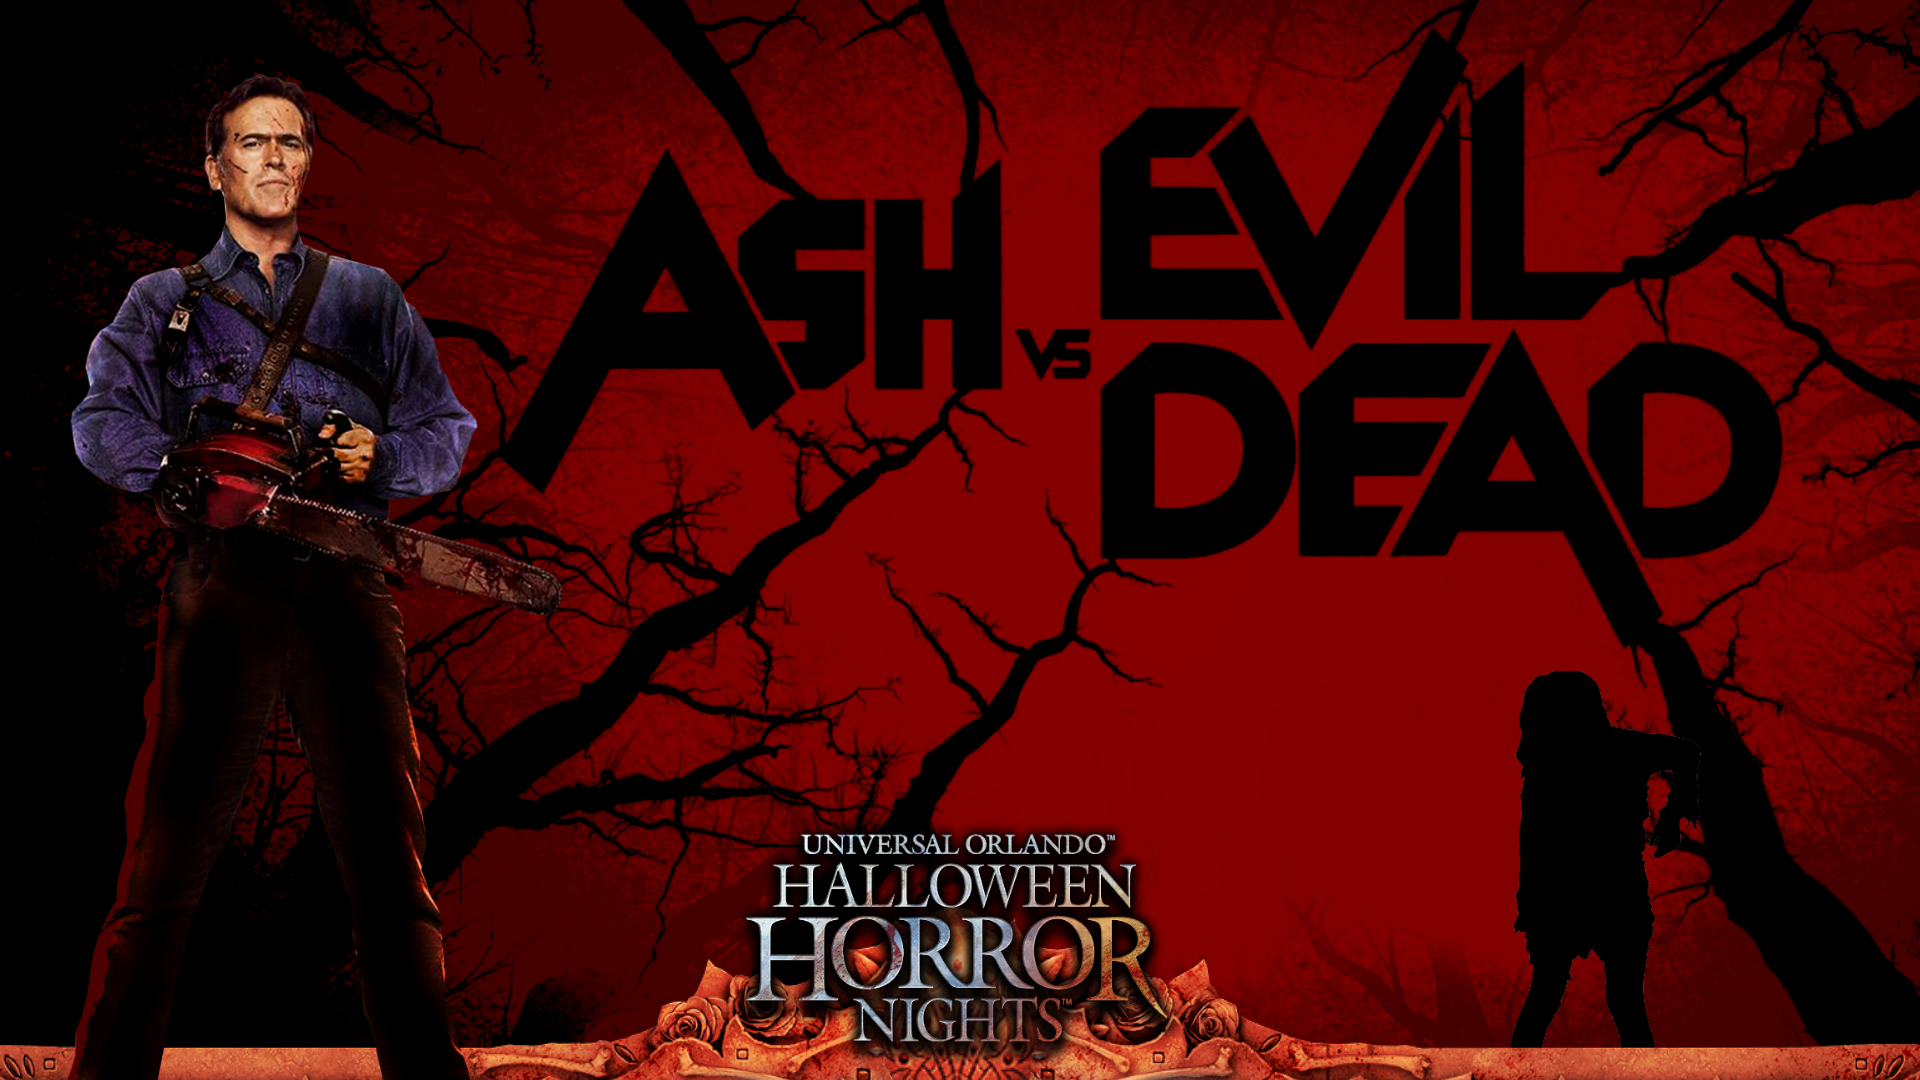 Ash vs Evil Dead Wallpaper 2 | Horror Night Nightmares